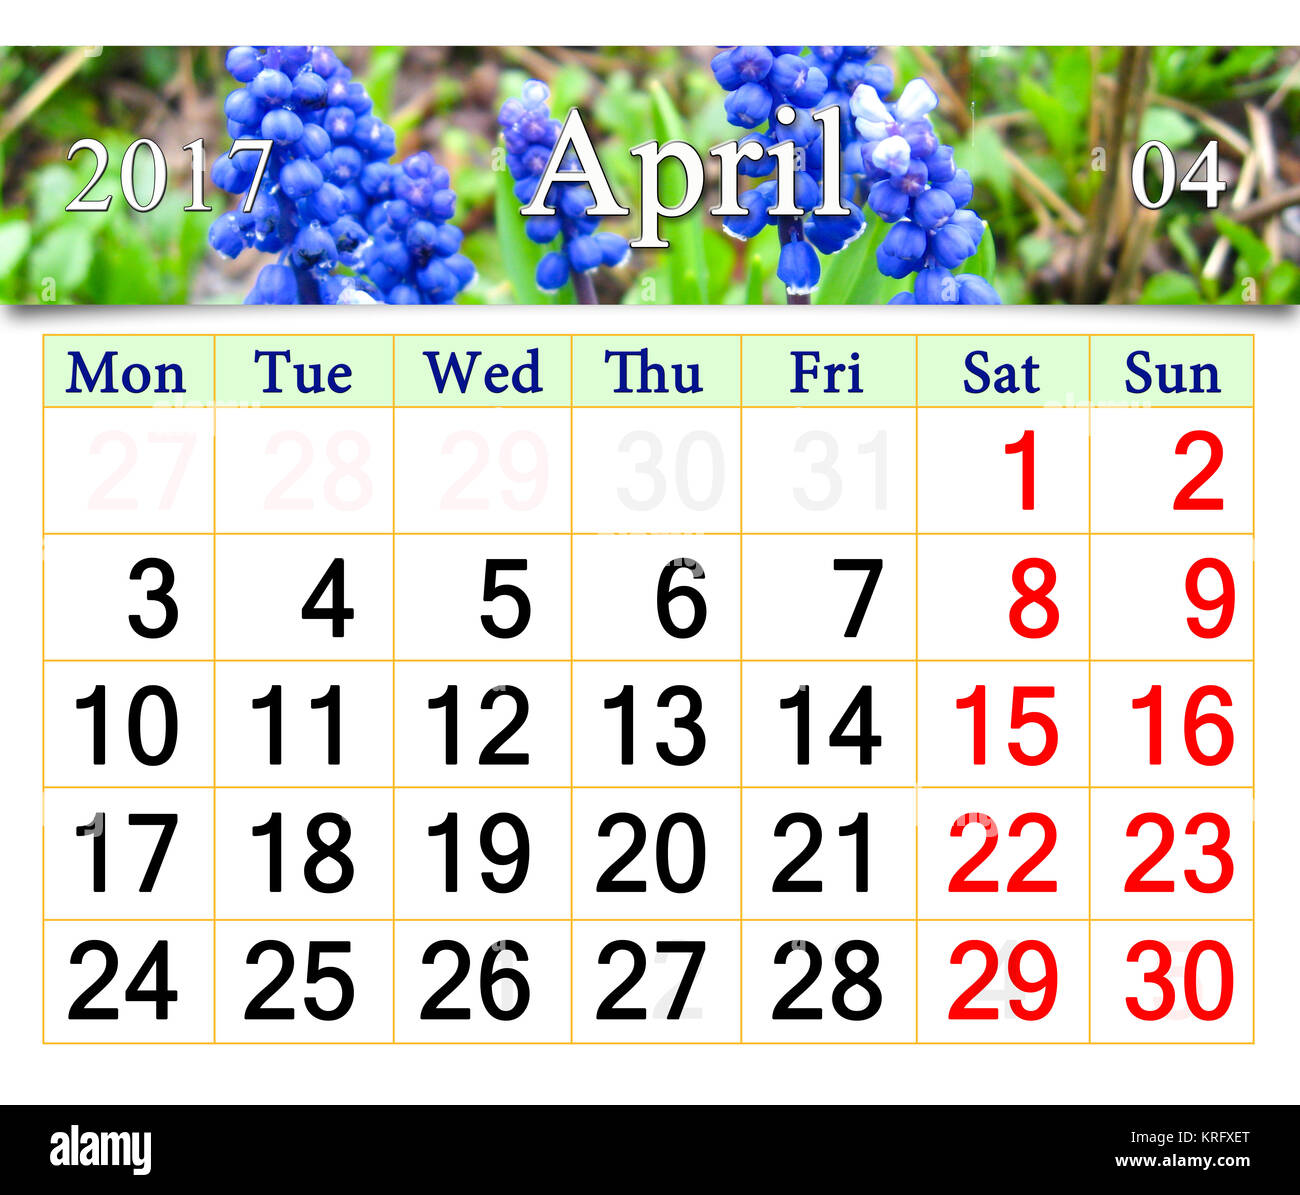 calendar for April of 2017 with muscari - Stock Image